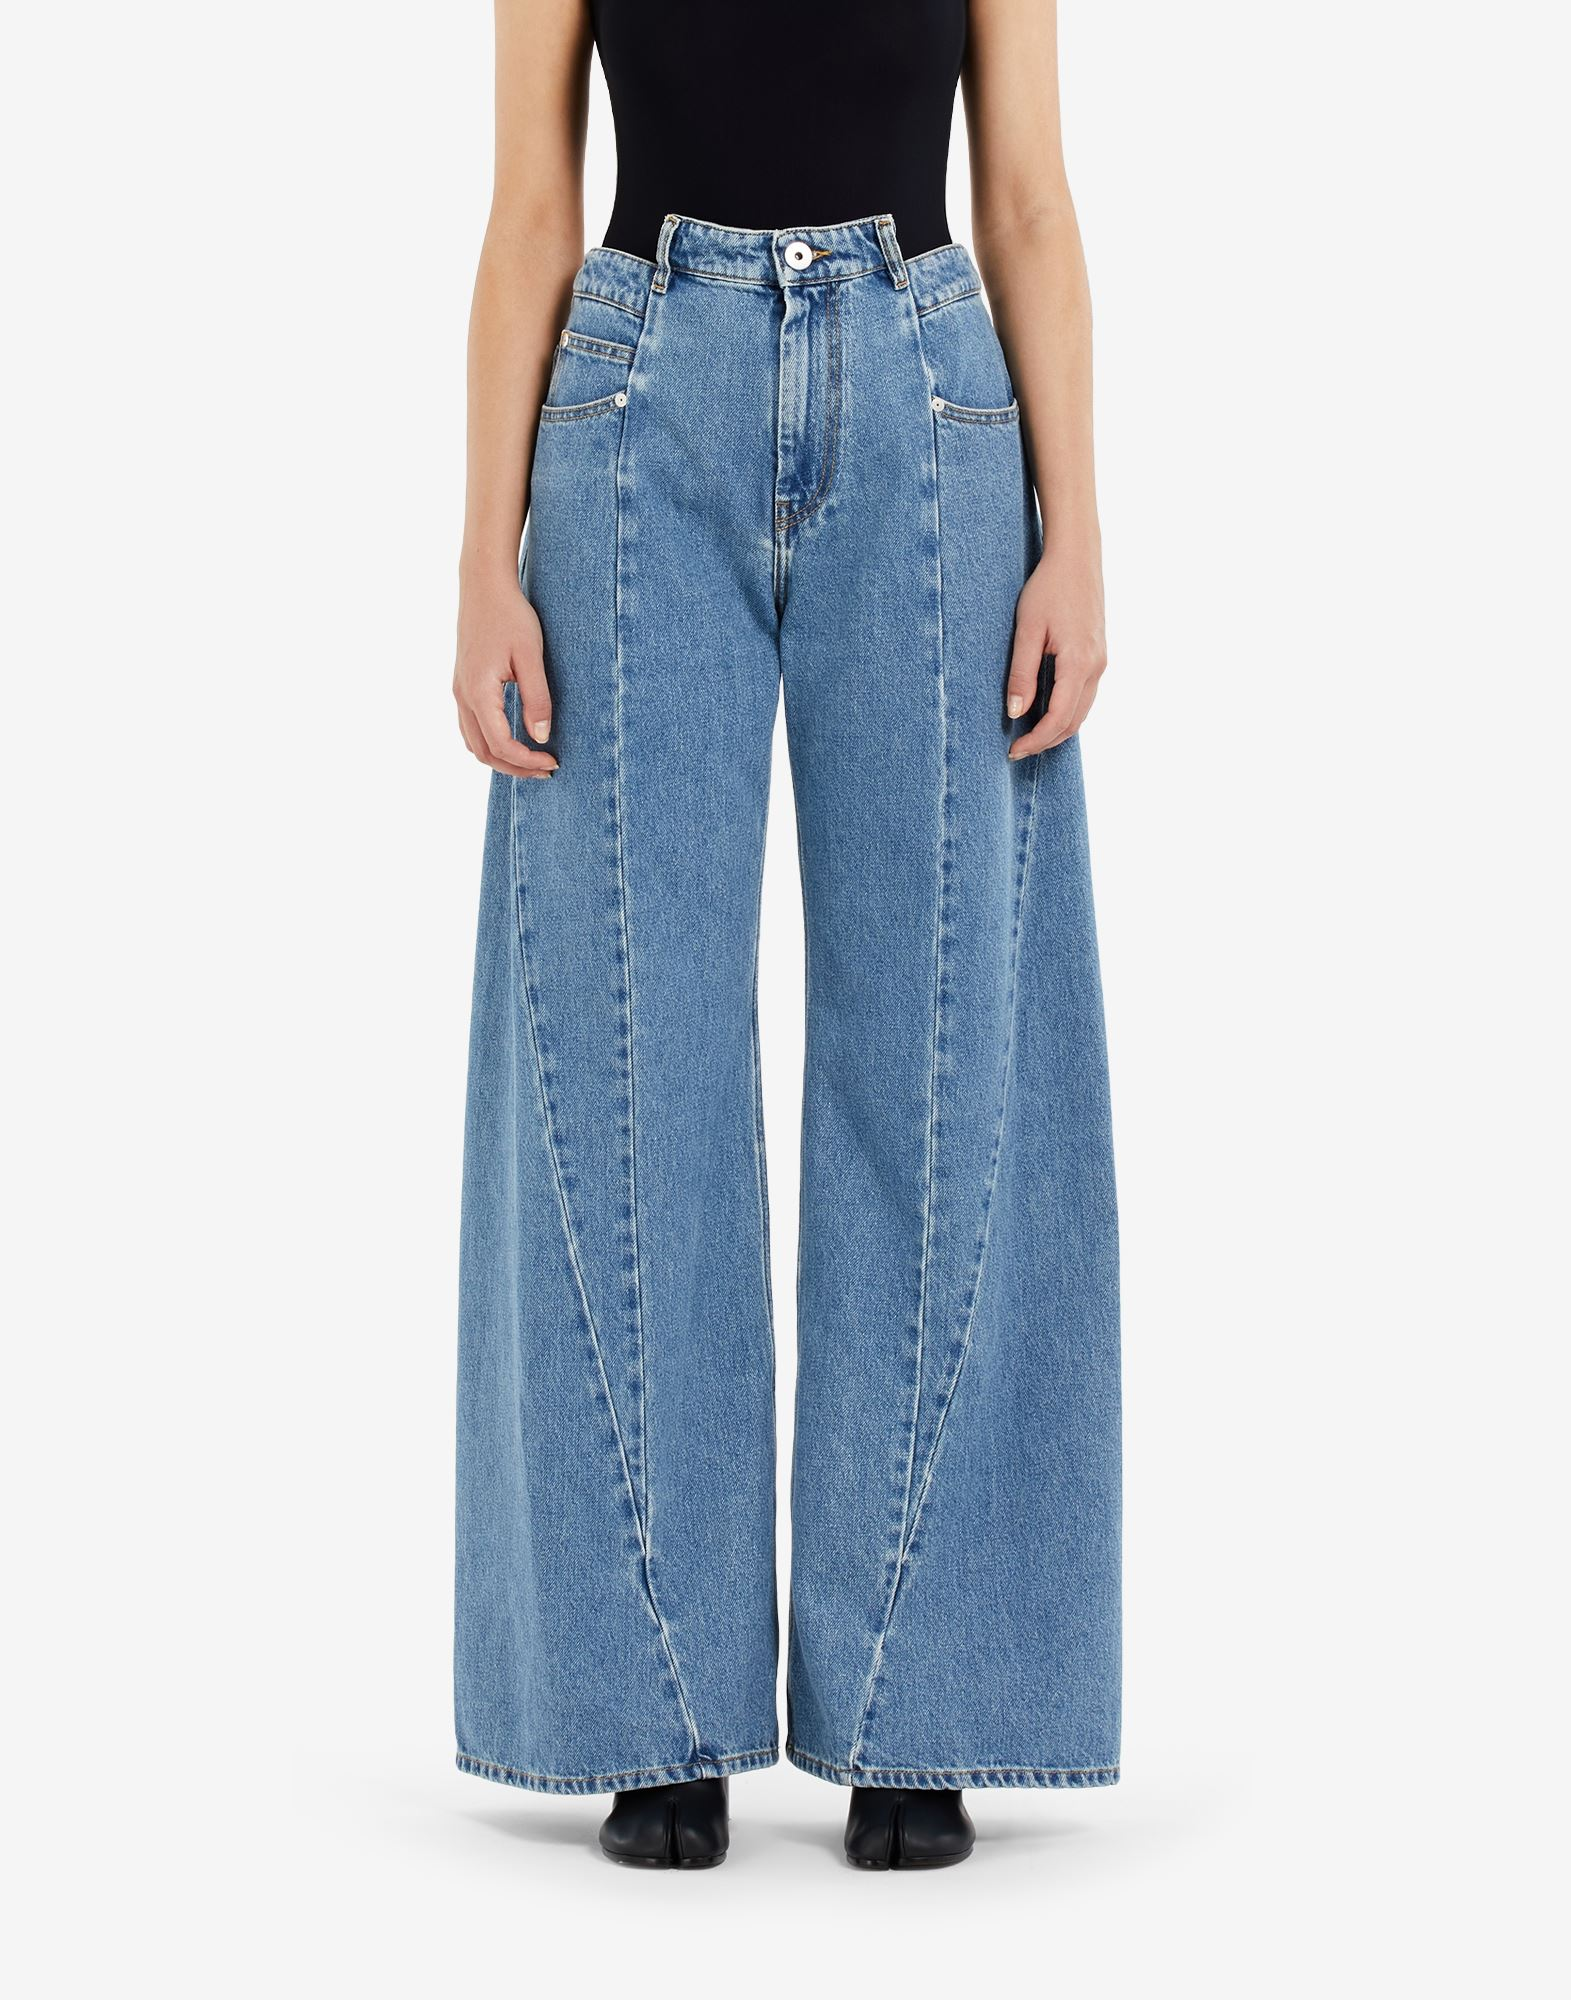 MAISON MARGIELA Décortiqué asymmetric wide-leg pants Jeans Woman a